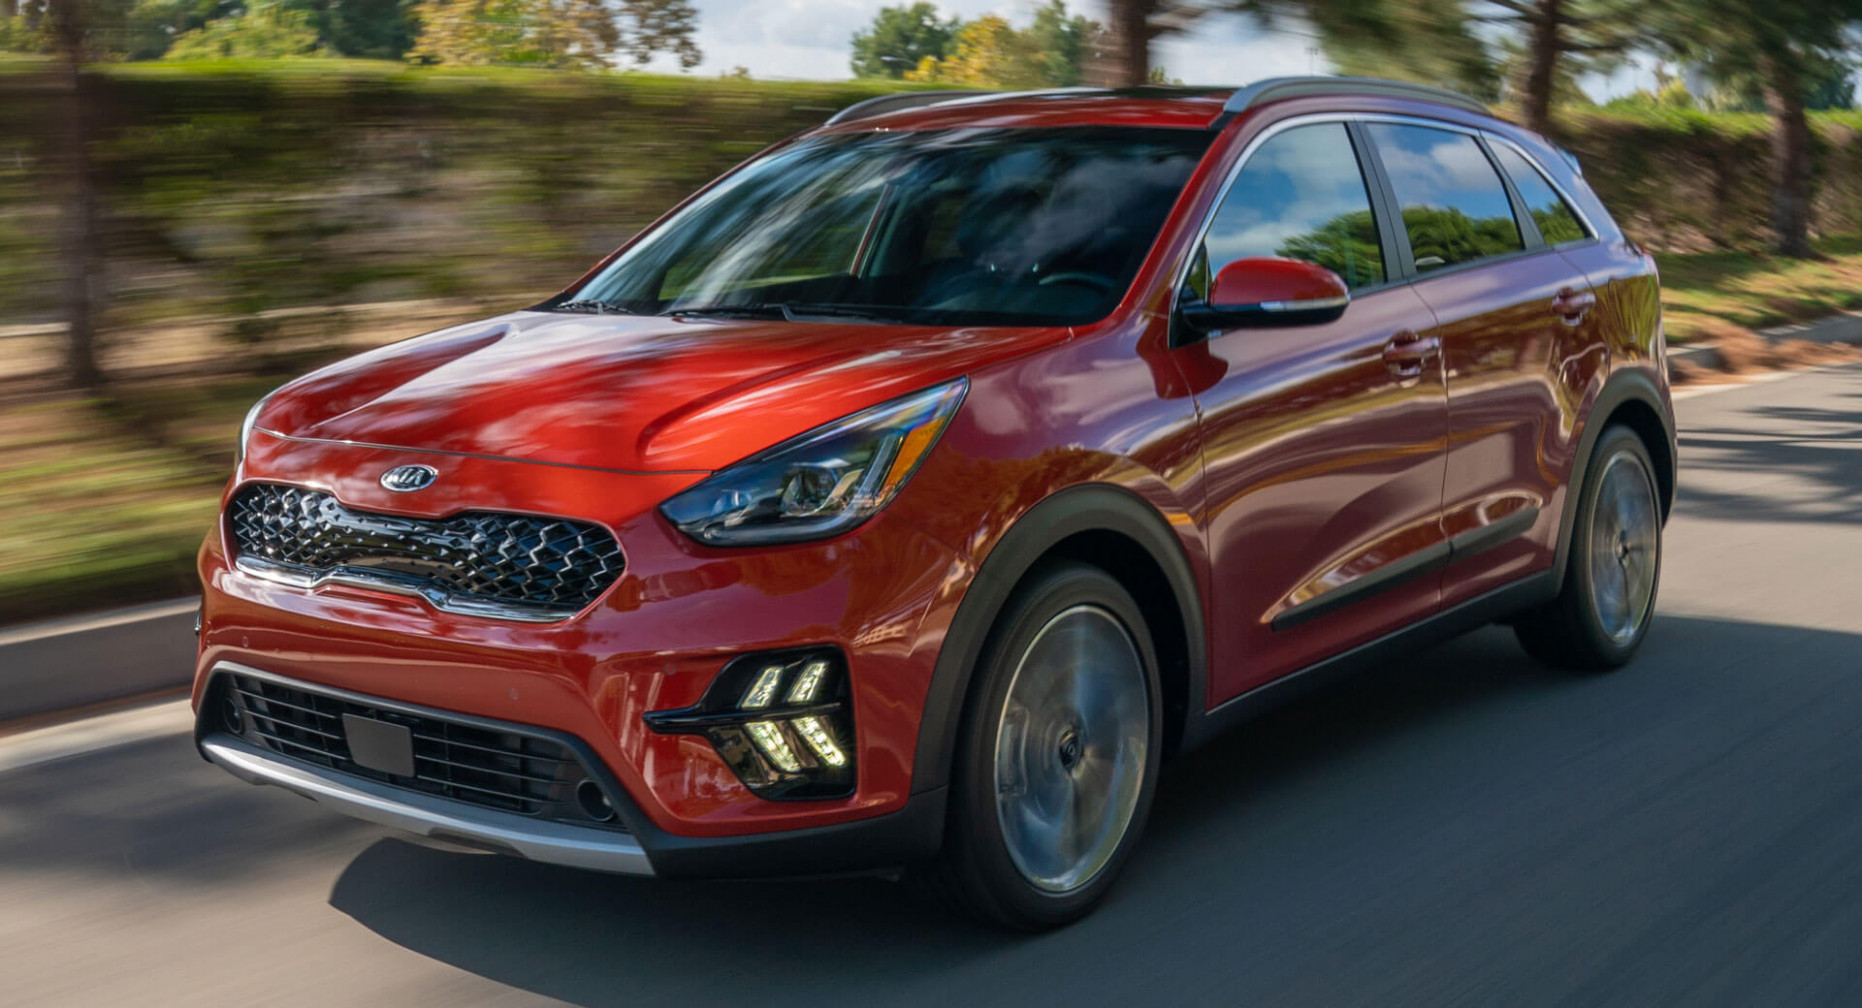 7 Kia Niro Hybrid Goes Under The Knife, Adds New Tech | Carscoops